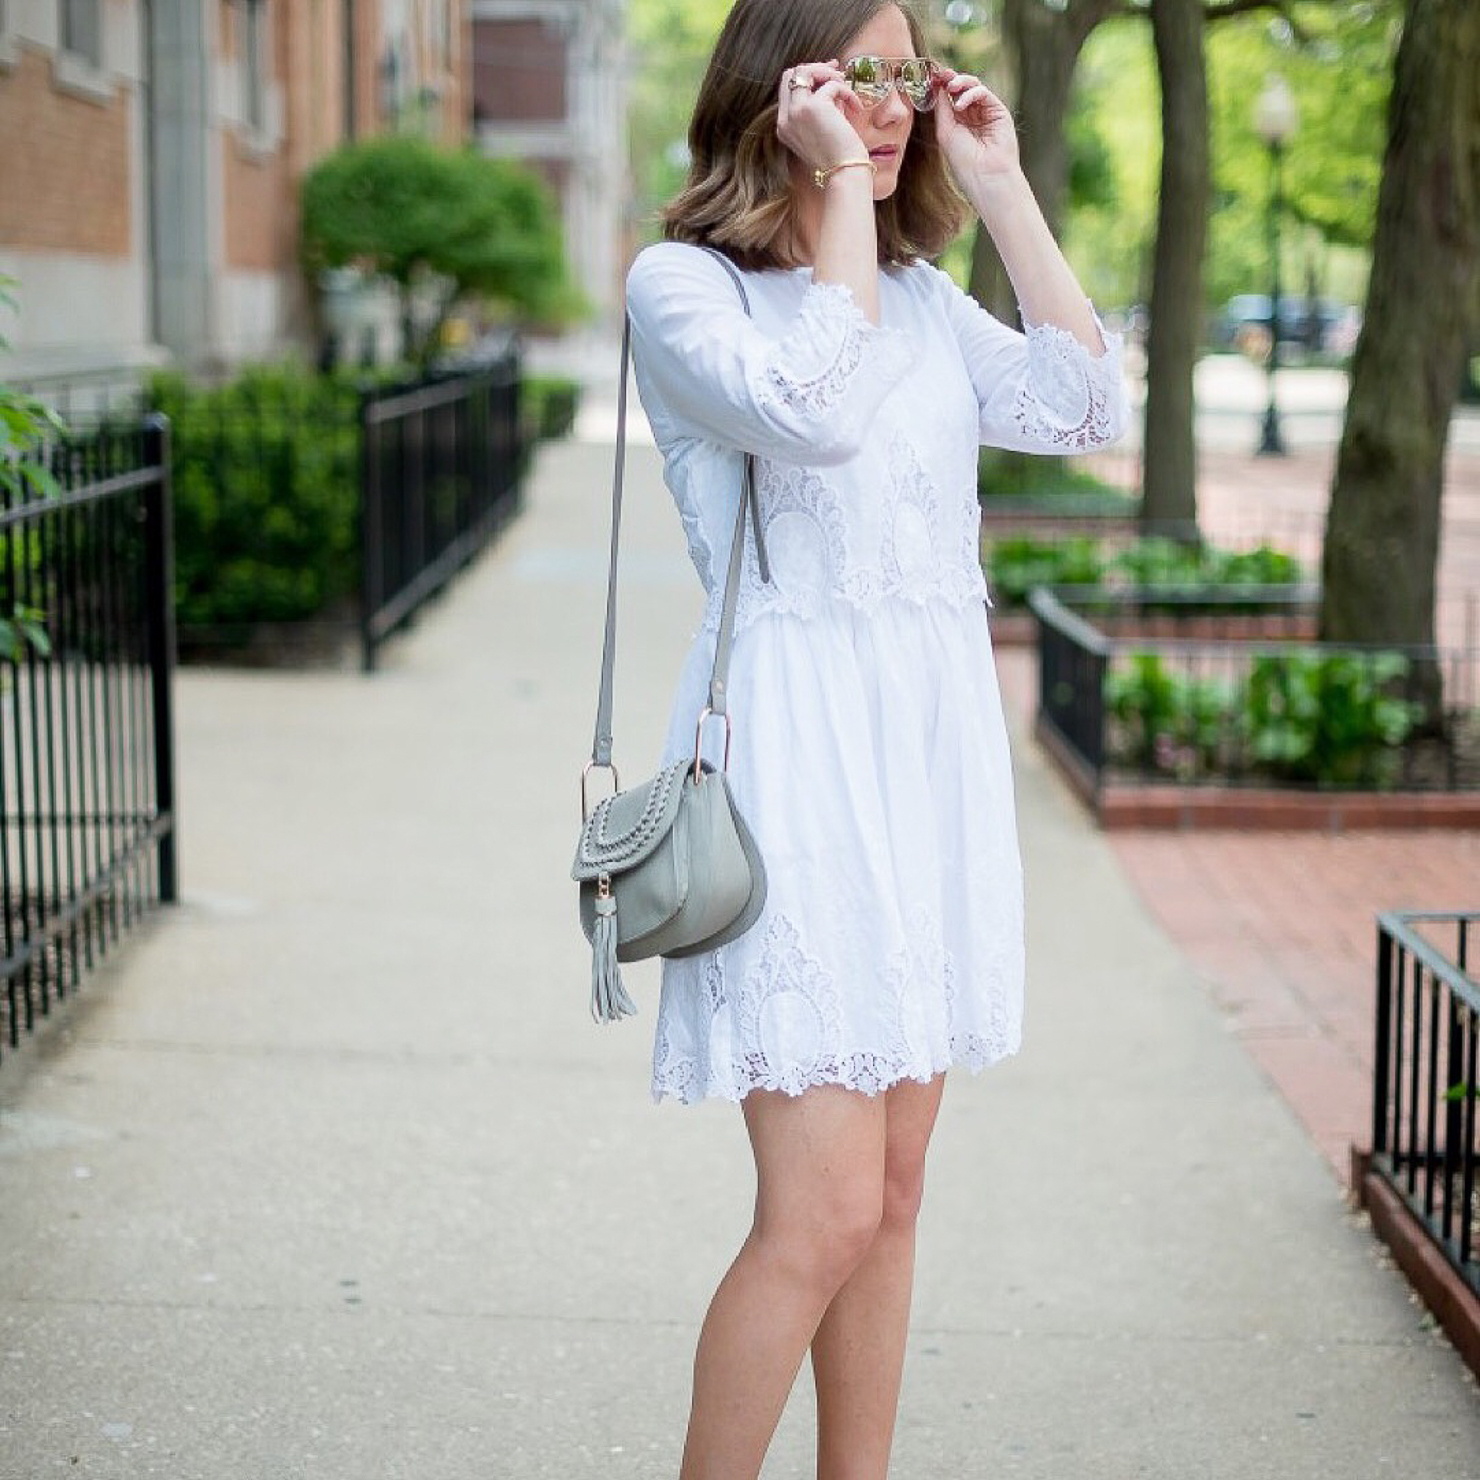 white-eyelet-target-dress-grey-chloe-hudson-dupe-chloe-hudson-look-for-less